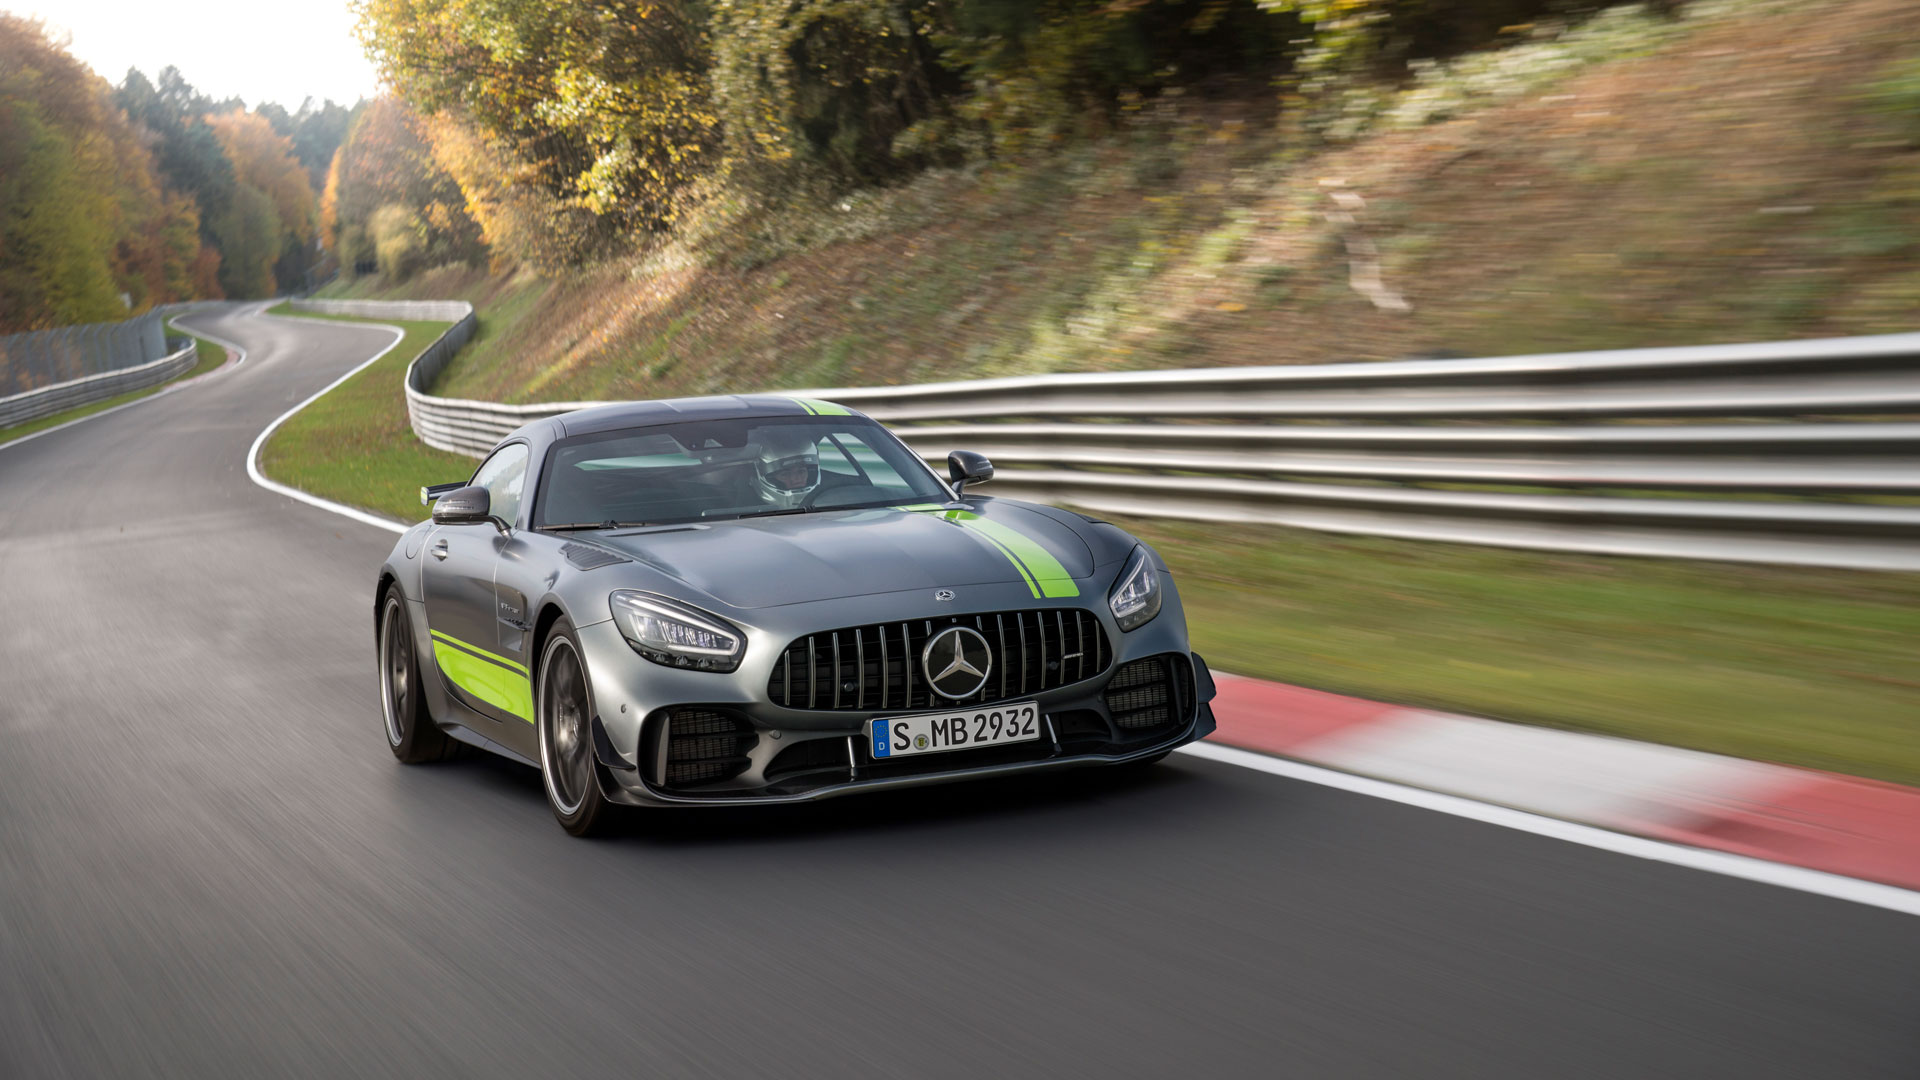 Eurofit delivers the tire wheel assemblies for the AMG GT R PRO